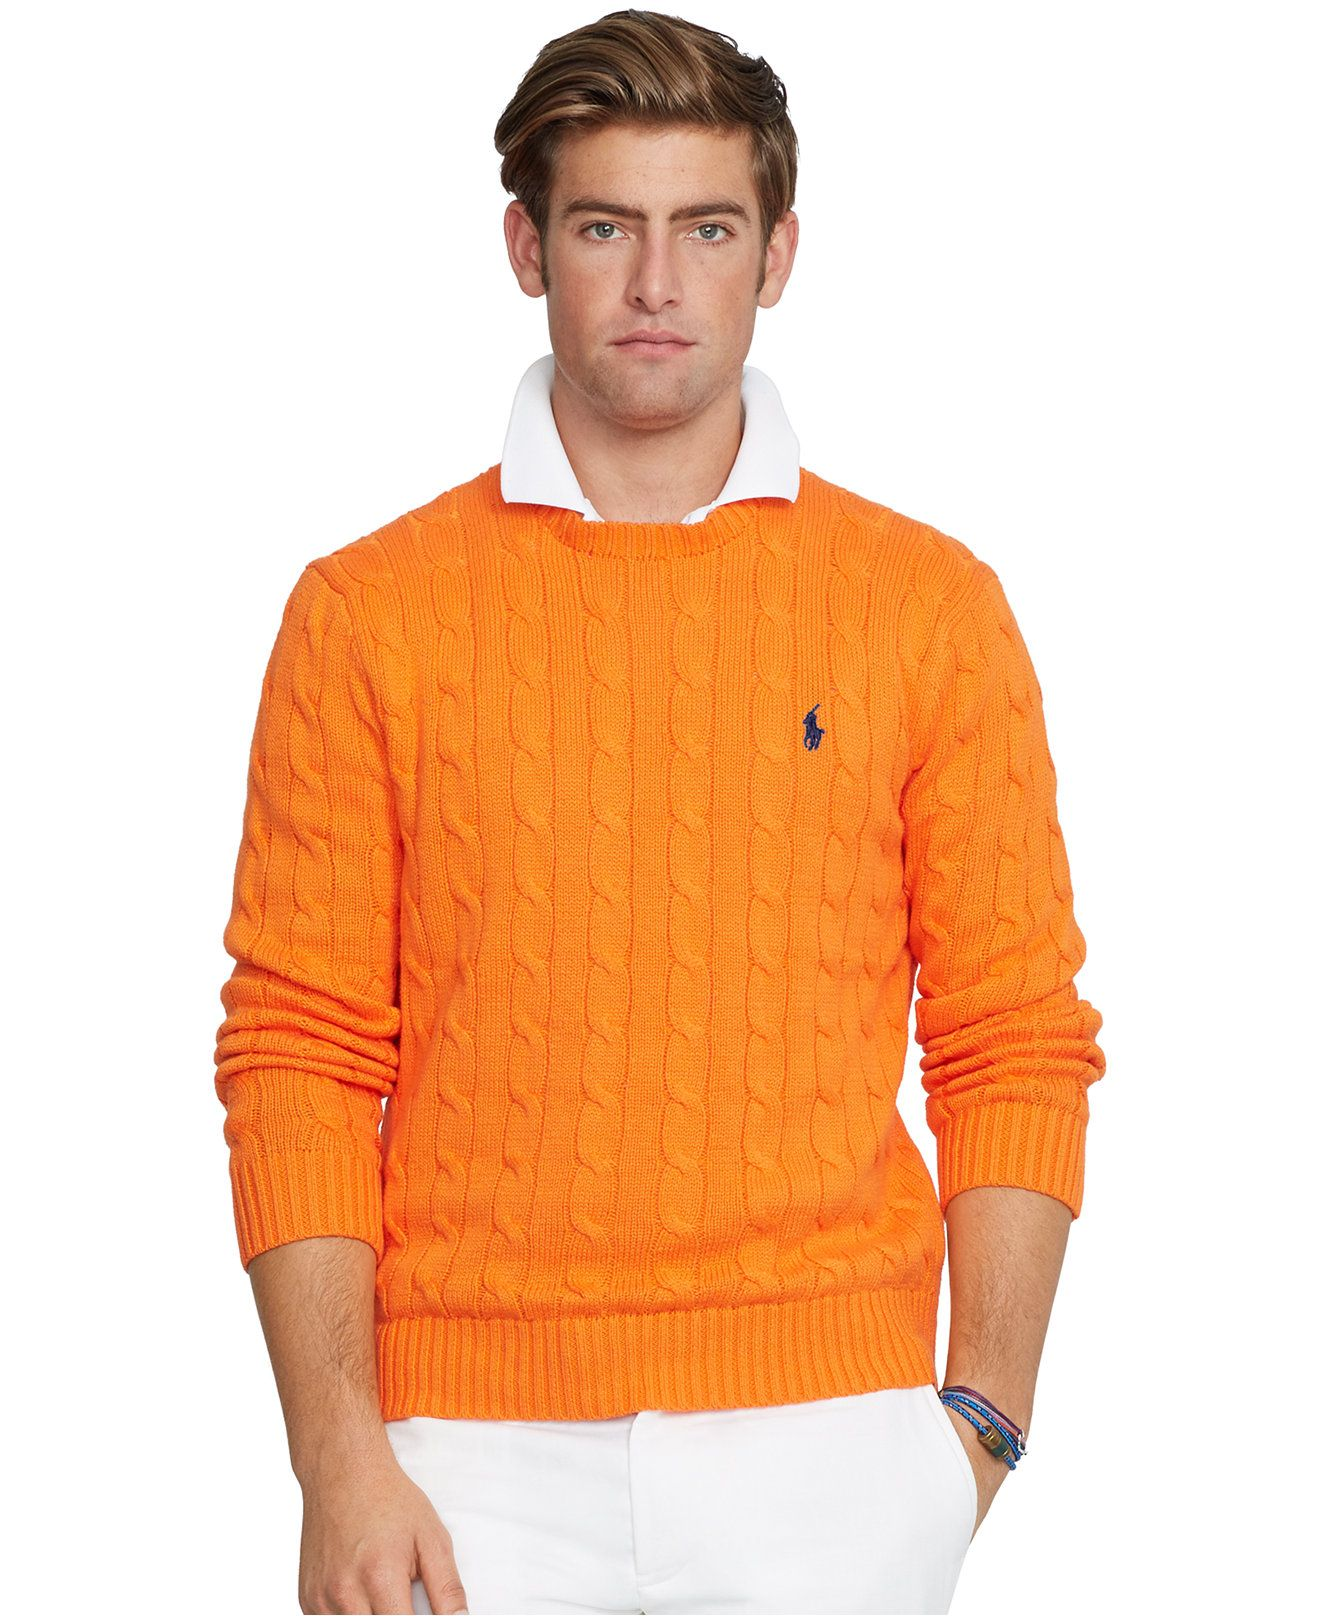 Polo Ralph Lauren Cable-Knit Crewneck Sweater - Sweaters - Men - Macy's